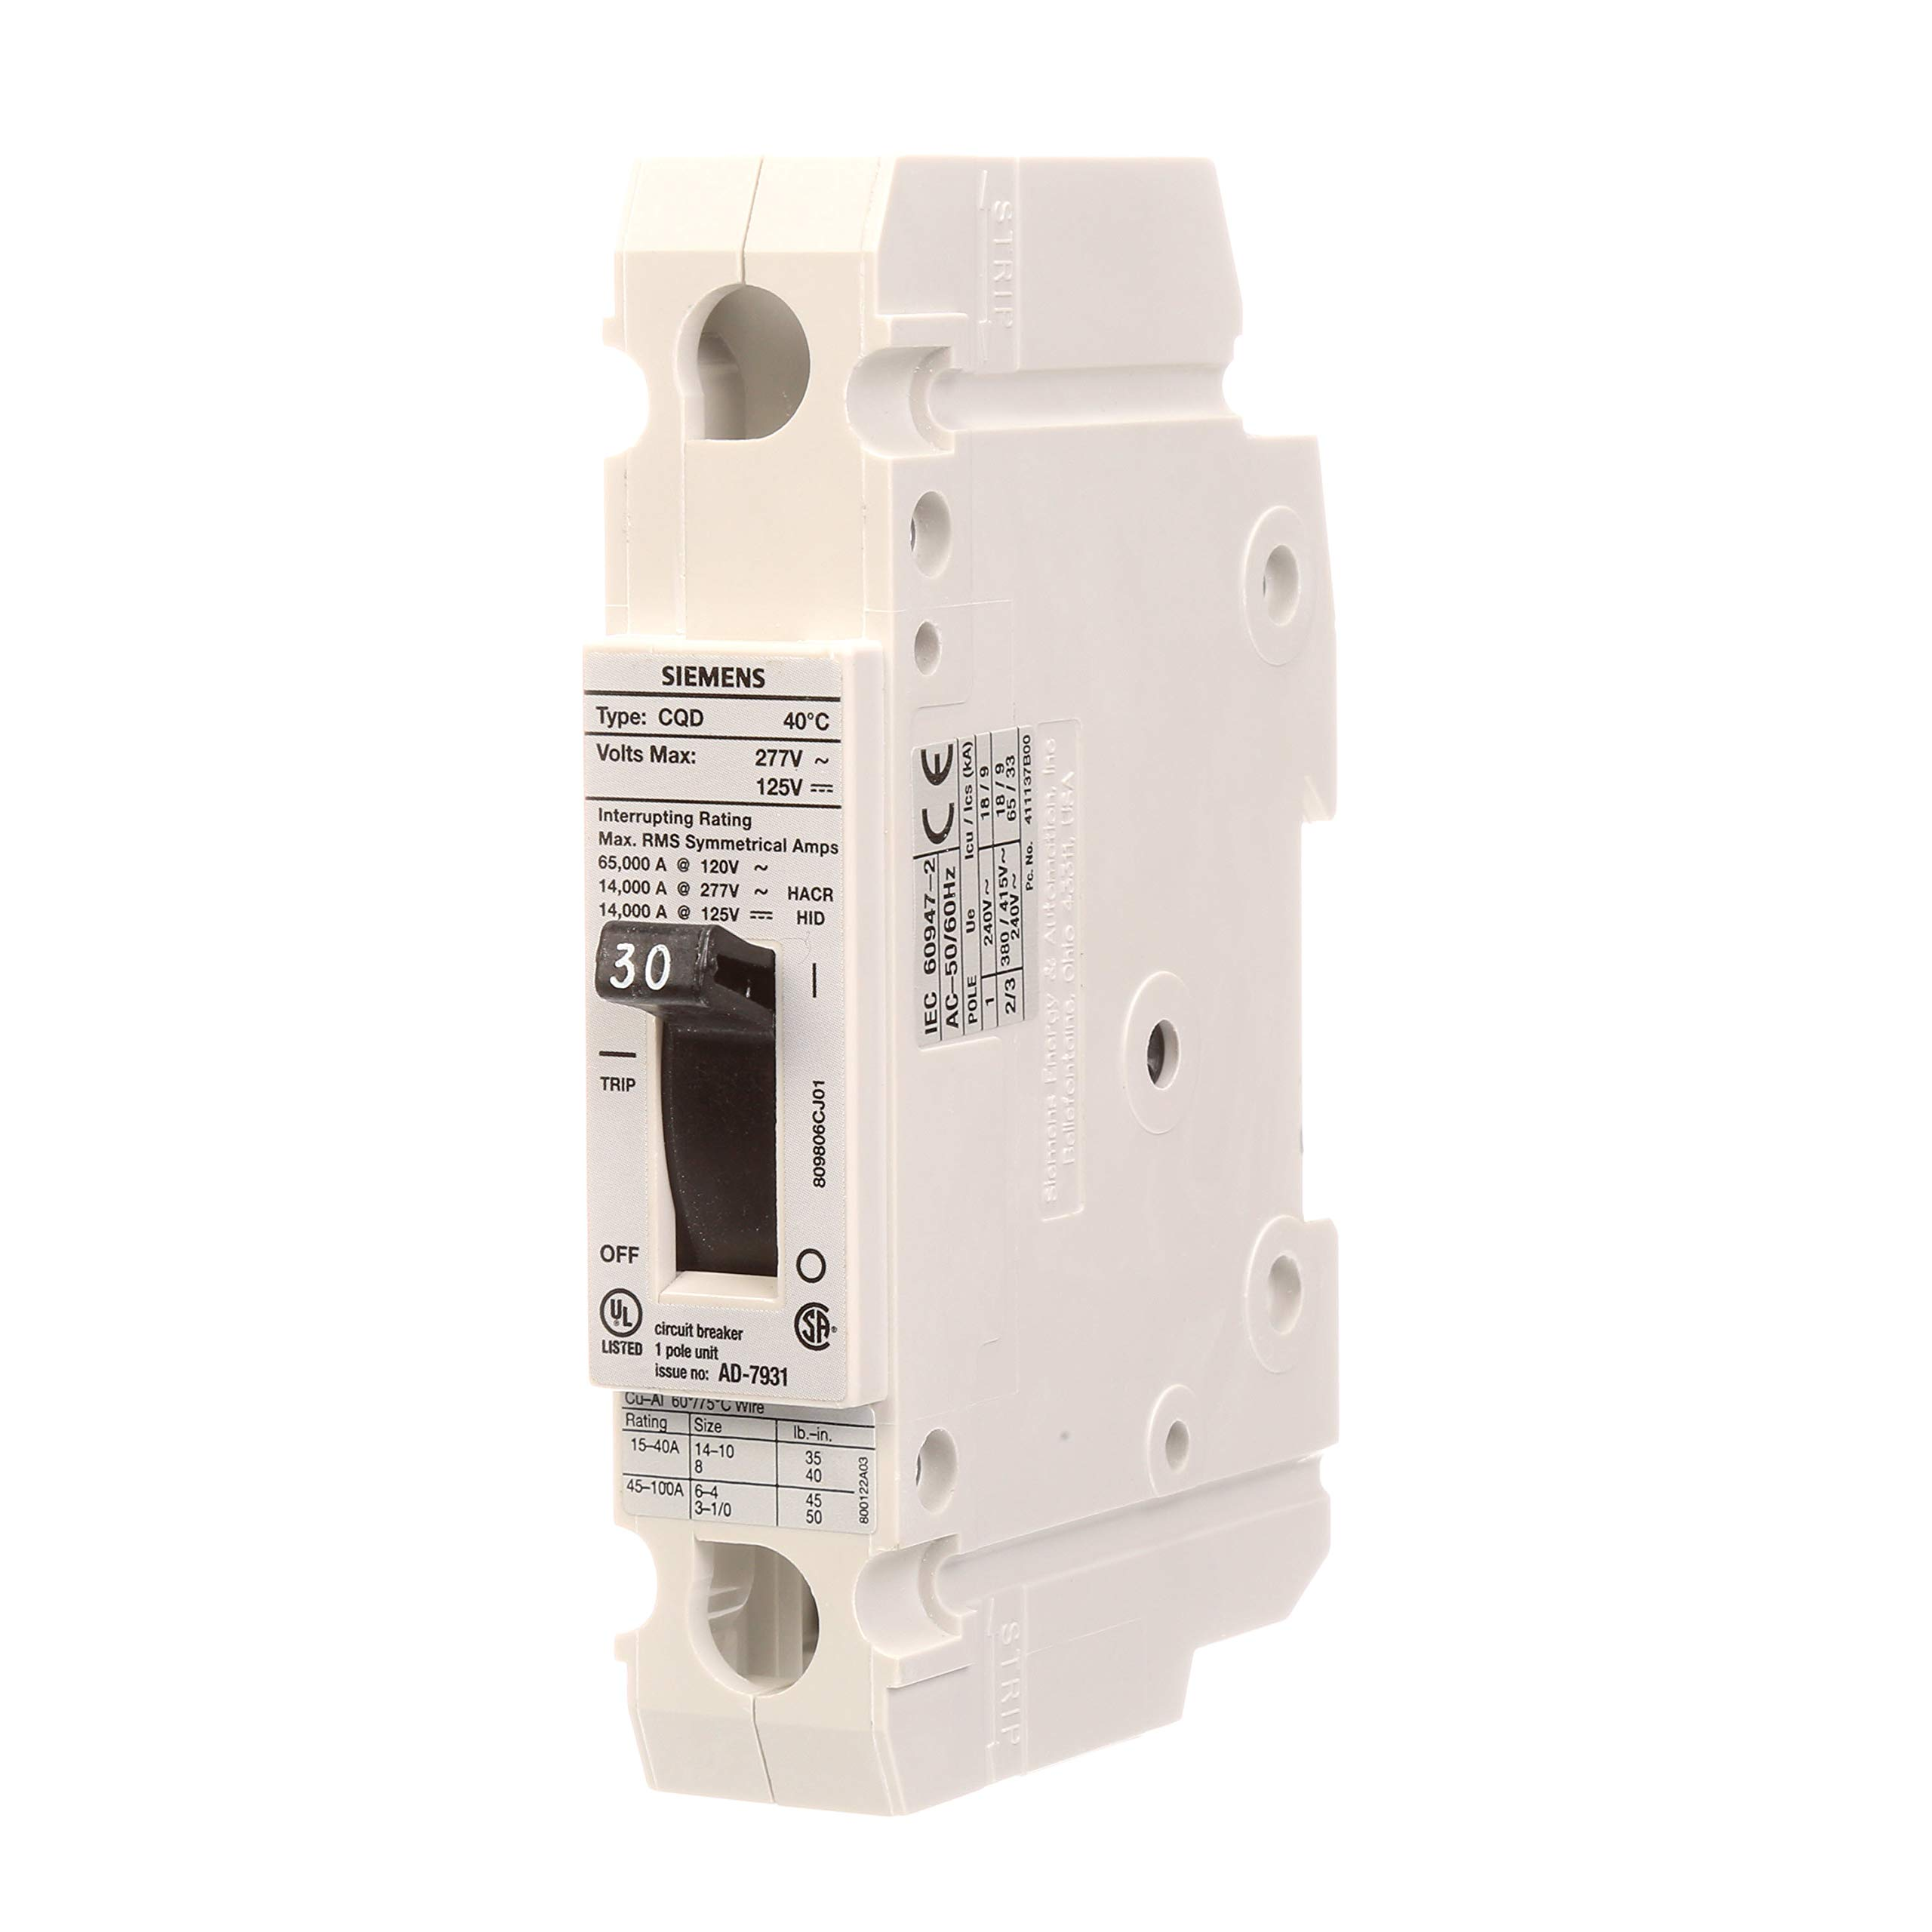 Siemens CQD130 30-Amp Single Pole 277V AC / 125V DC 14KAIC Cable In/Cable Out Breaker